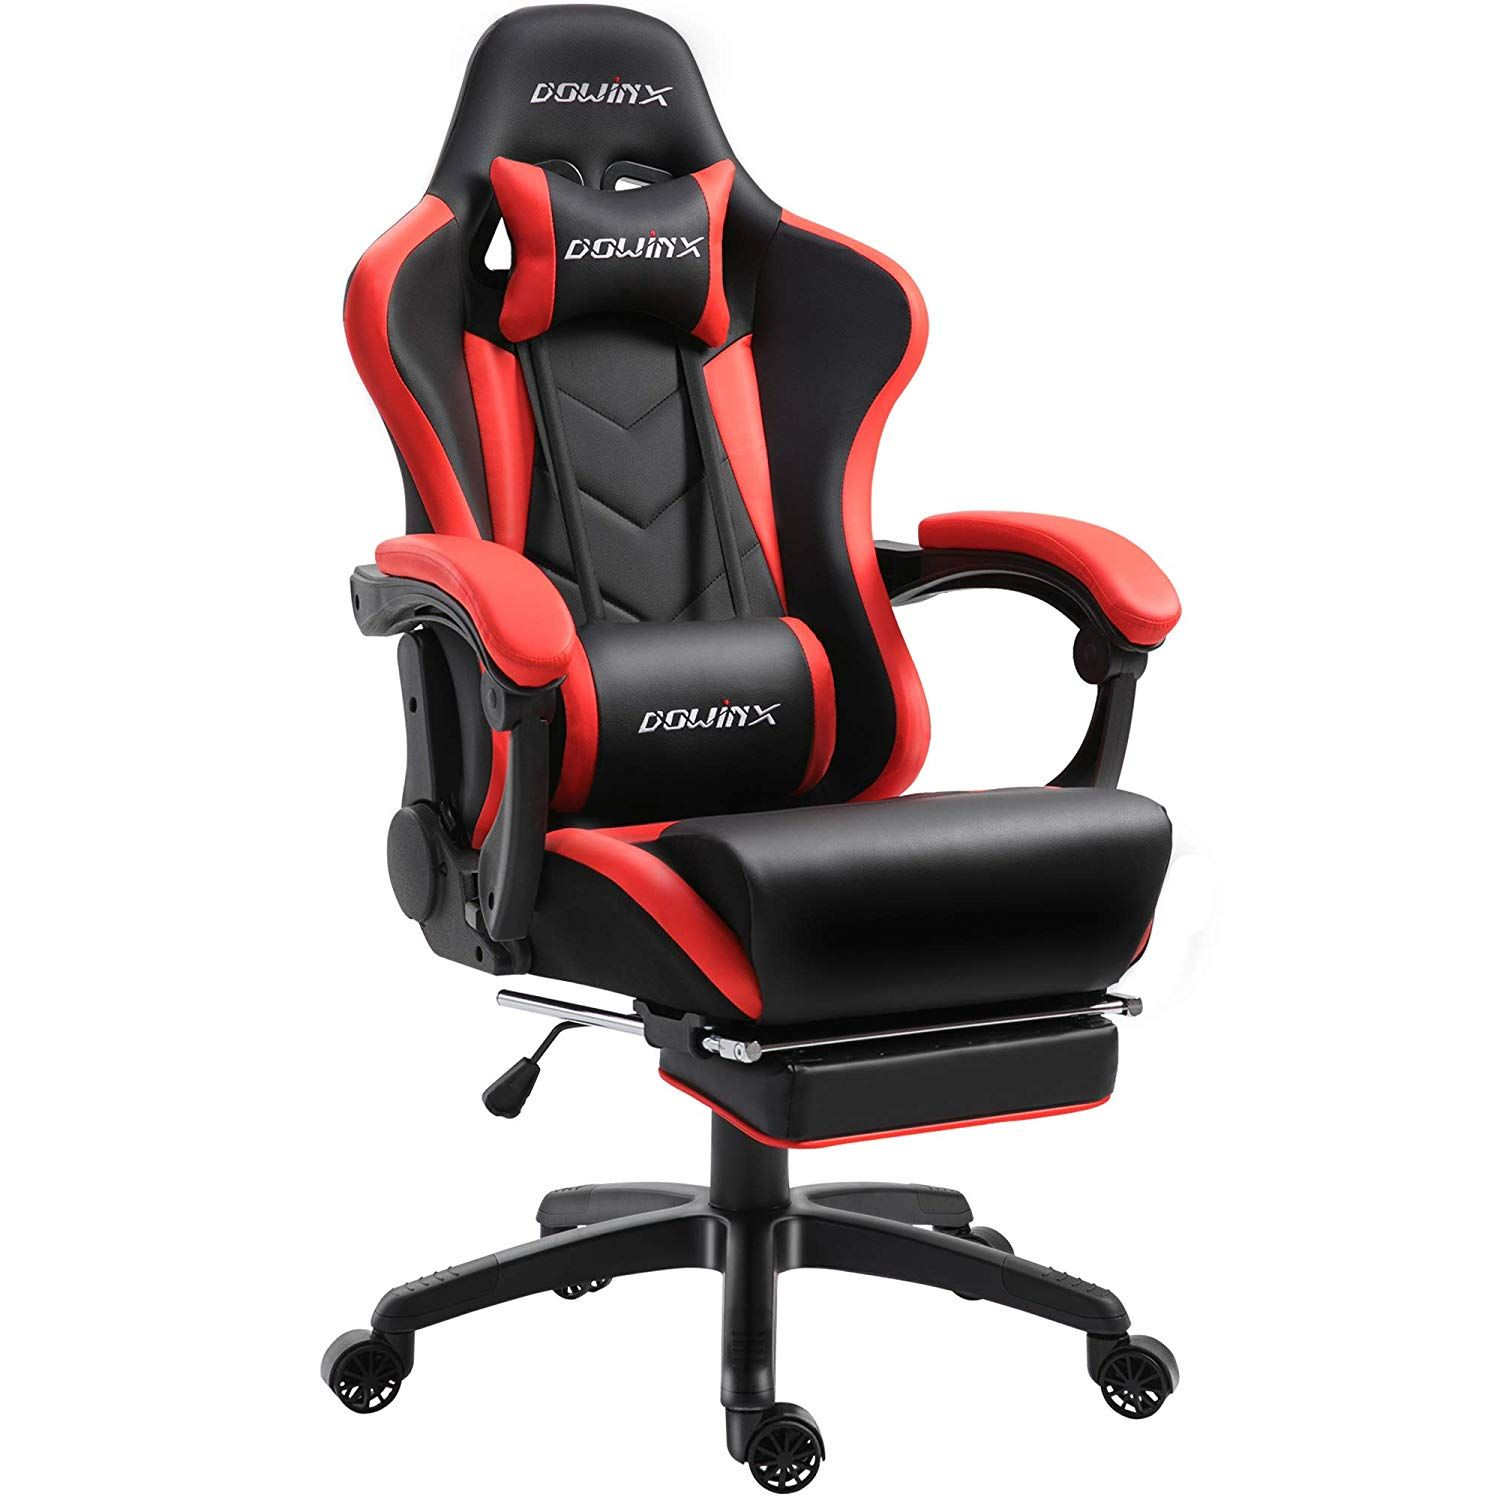 Dowinx Gaming Chair In 2020 Gaming Chair Gamer Chair Foot Rest